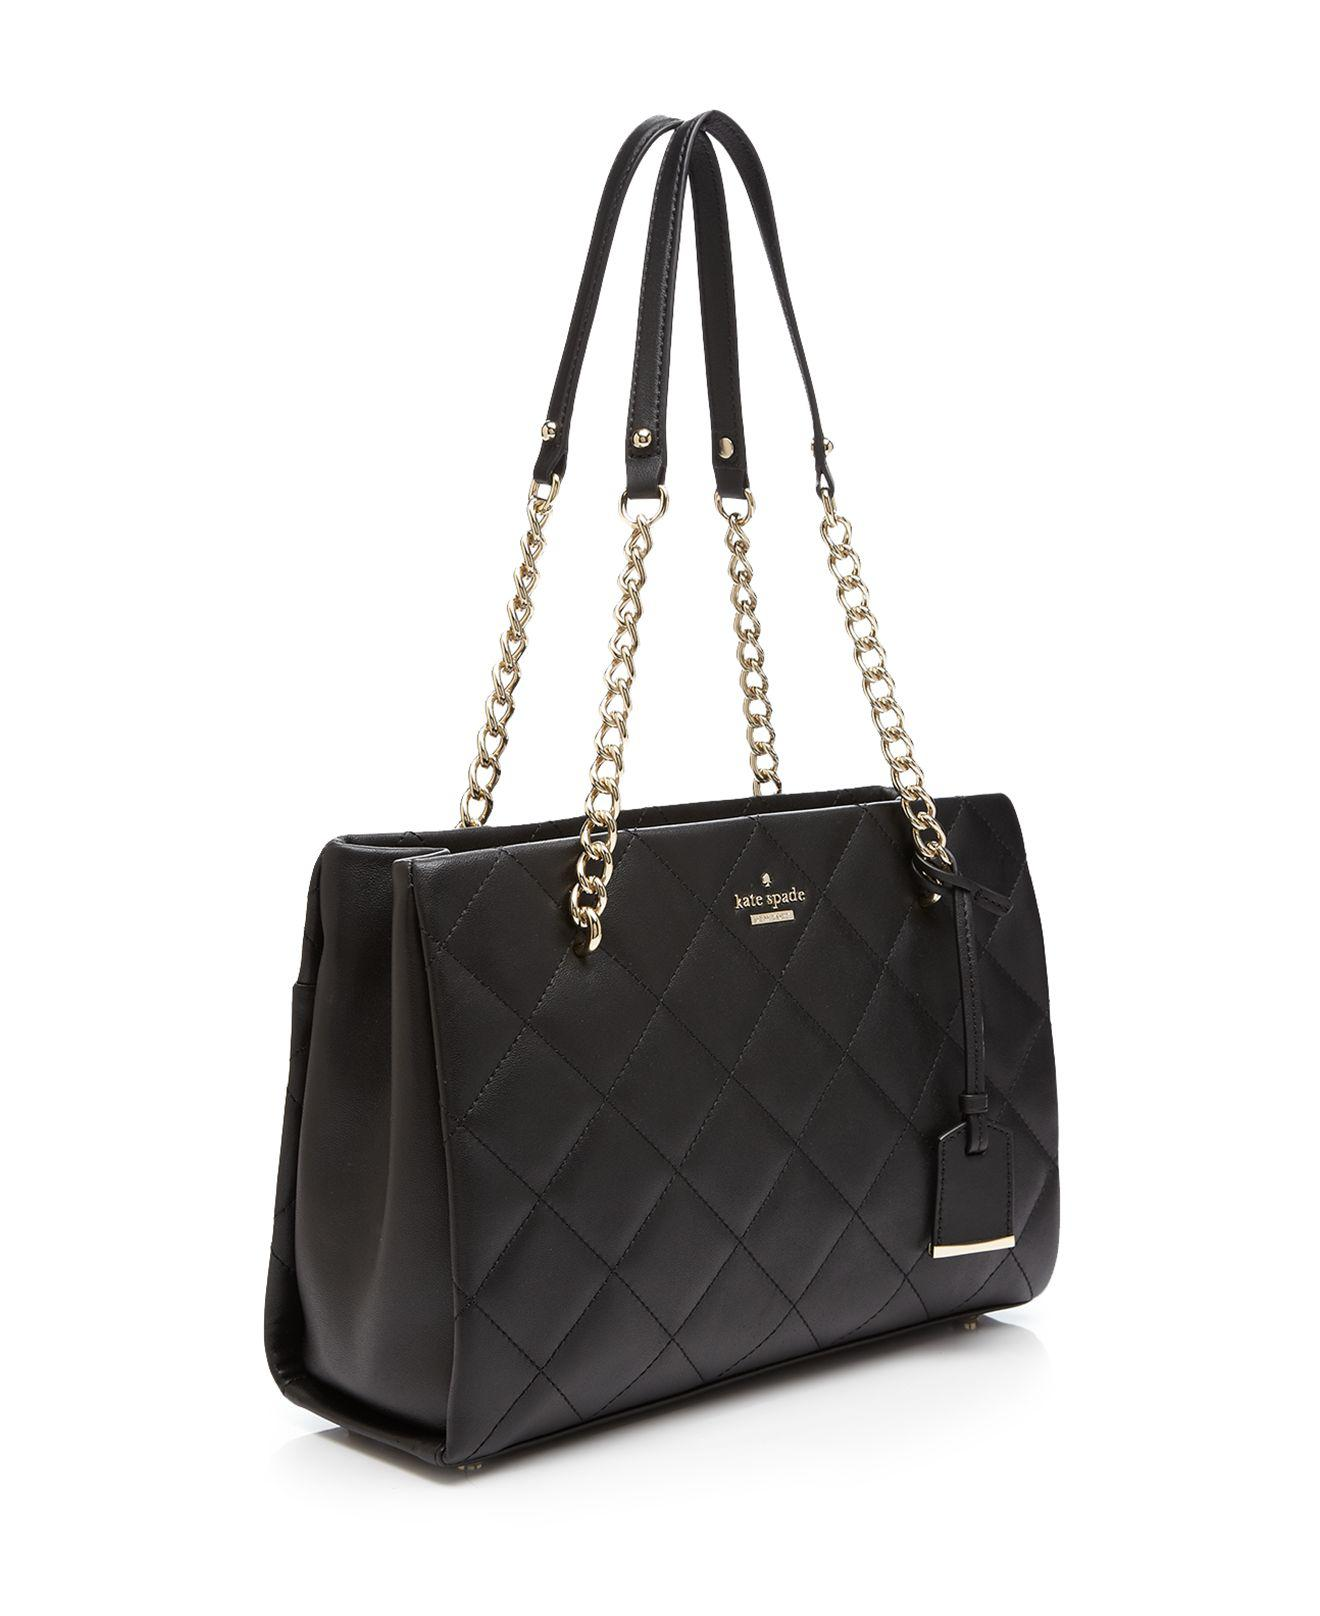 Kate Spade Emerson Place Phoebe Small Leather Tote in Black/Gold (Black)